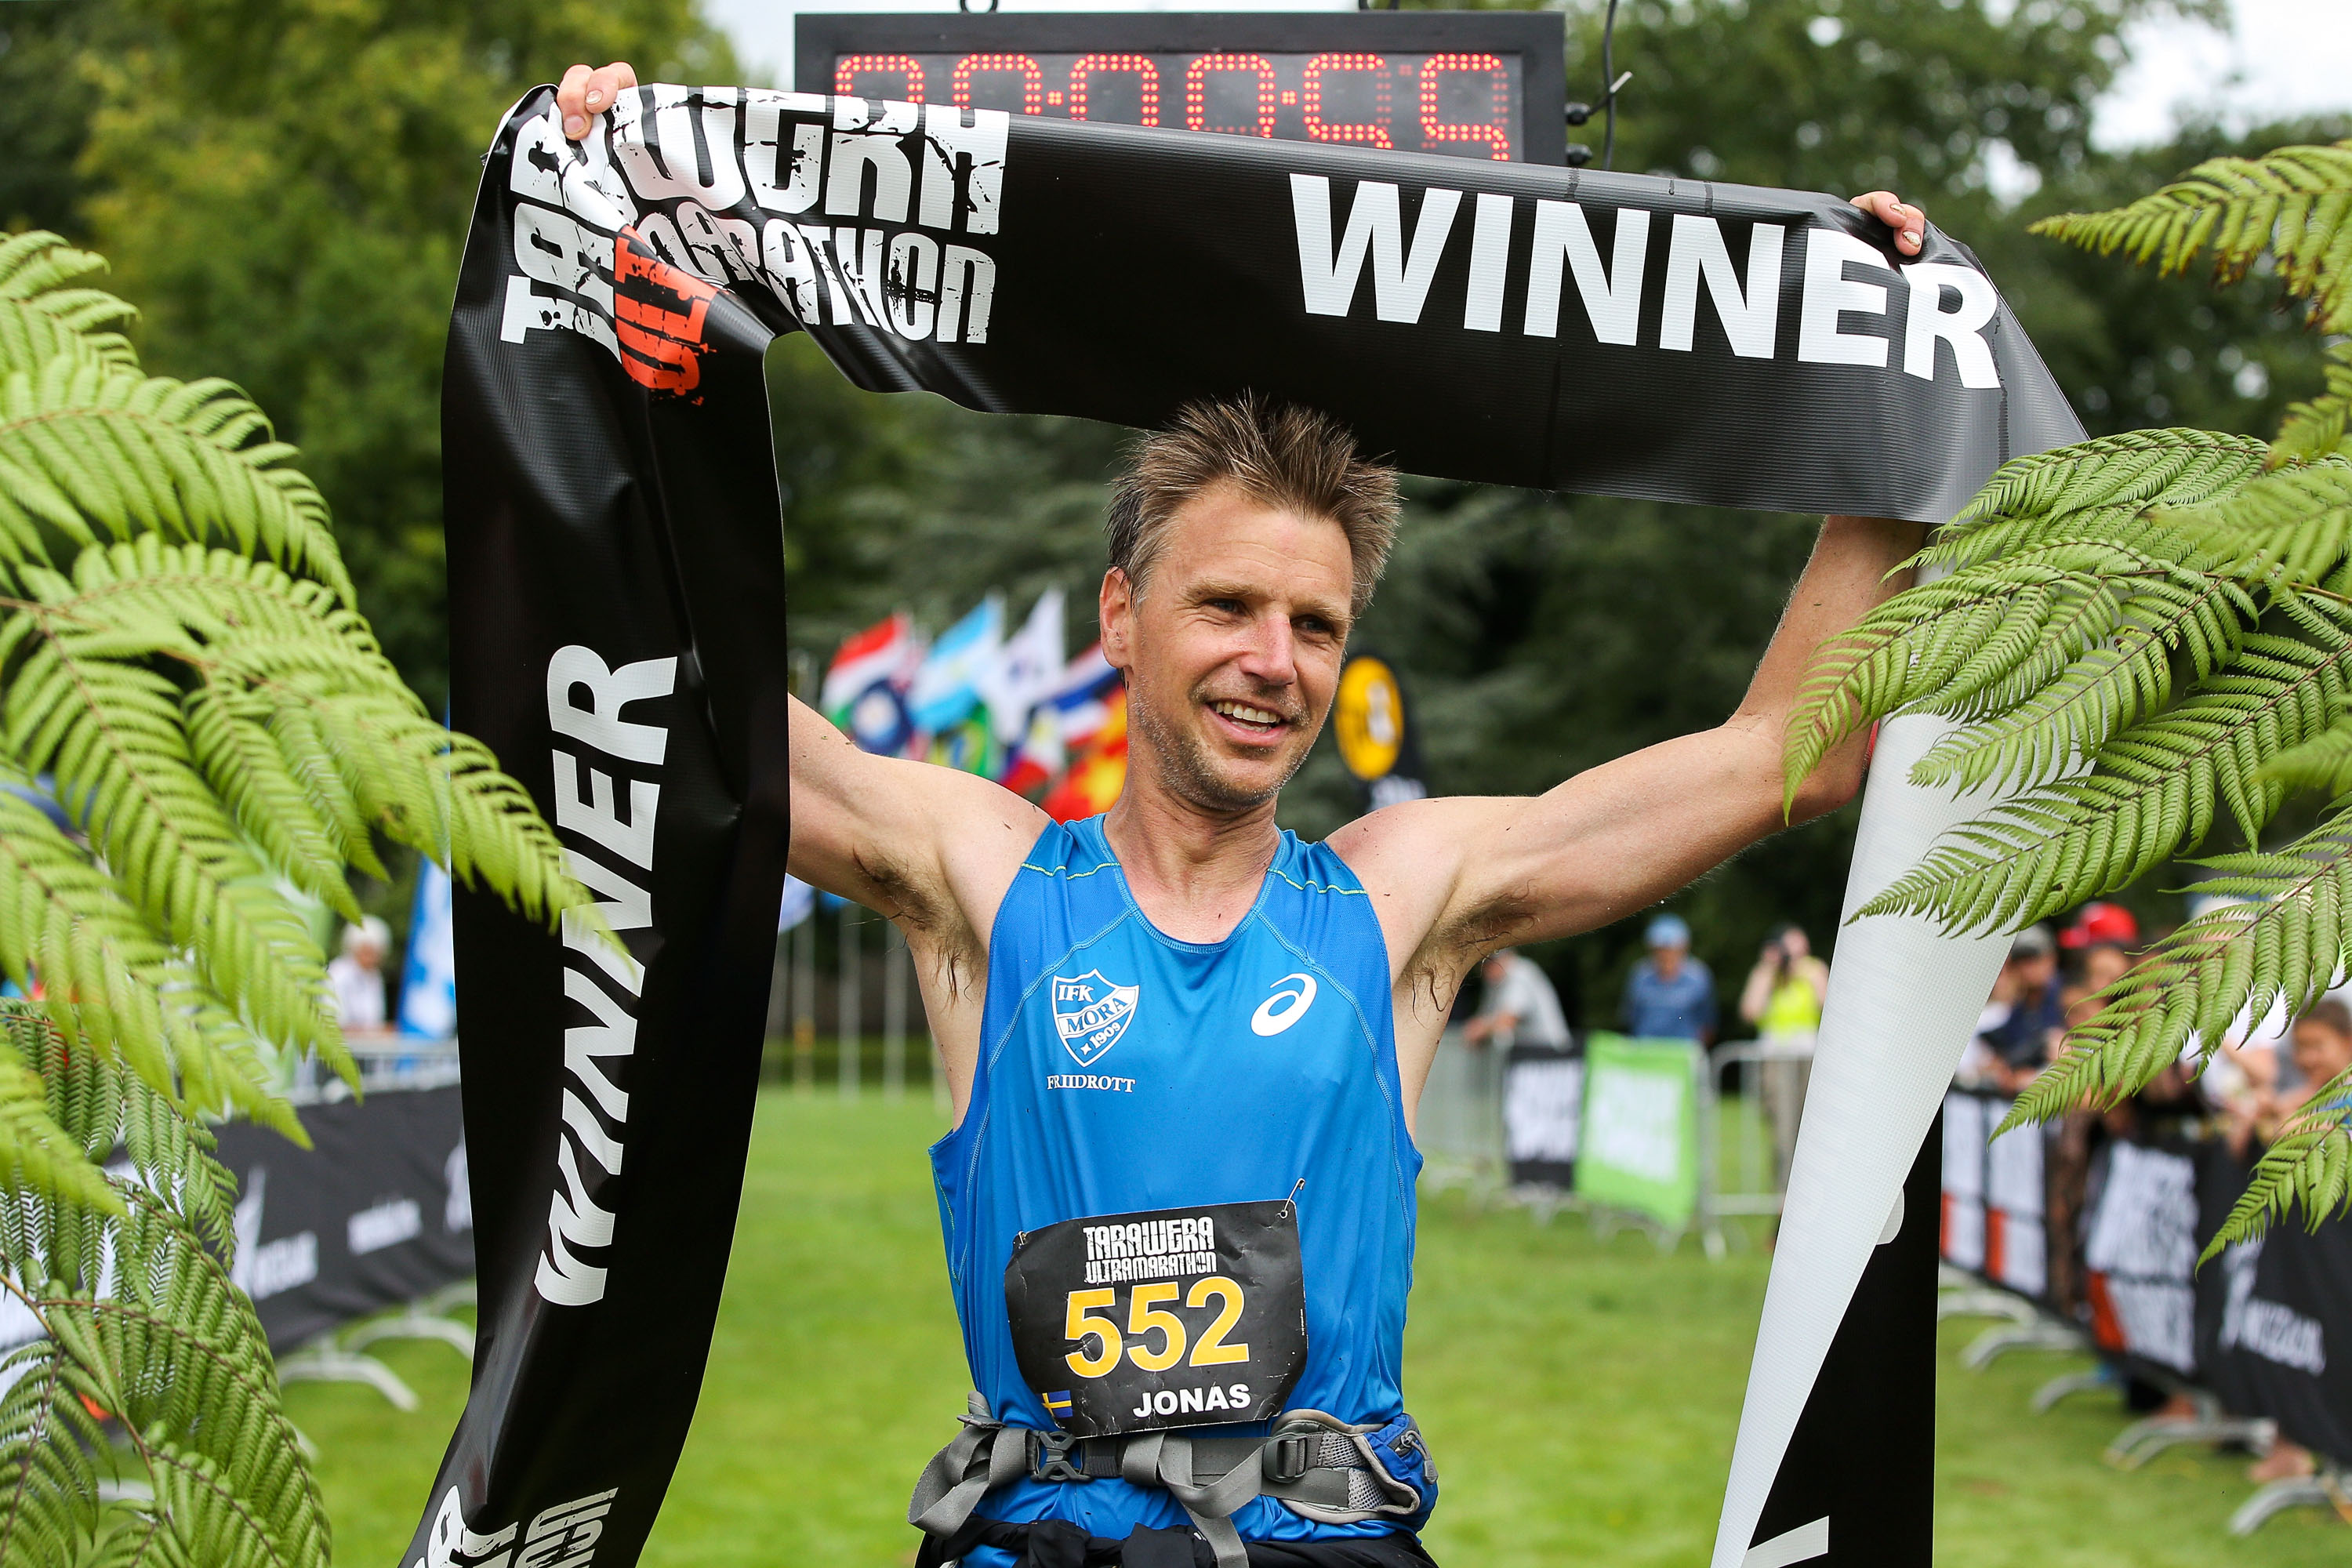 ROTORUA, NEW ZEALAND - FEBRUARY 06: Jonas Buud of Sweden celebrates after winning the Tarawera Ultramarathon on February 6, 2016 in Rotorua, New Zealand. (Photo by Hagen Hopkins/Getty Images) *** Local Caption *** Jonas Buud